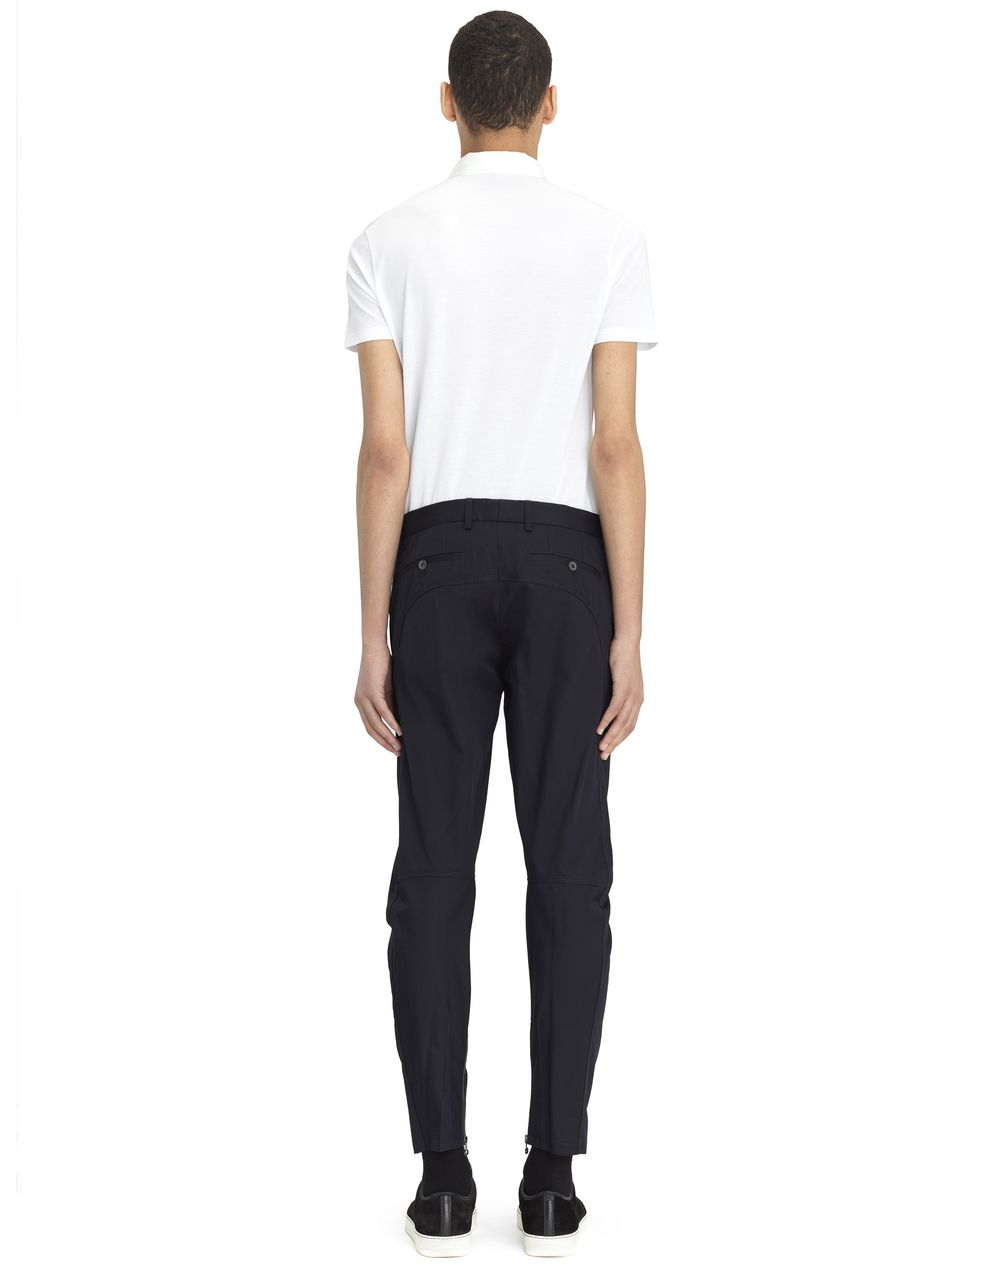 COTTON GABARDINE BIKER PANTS - Lanvin